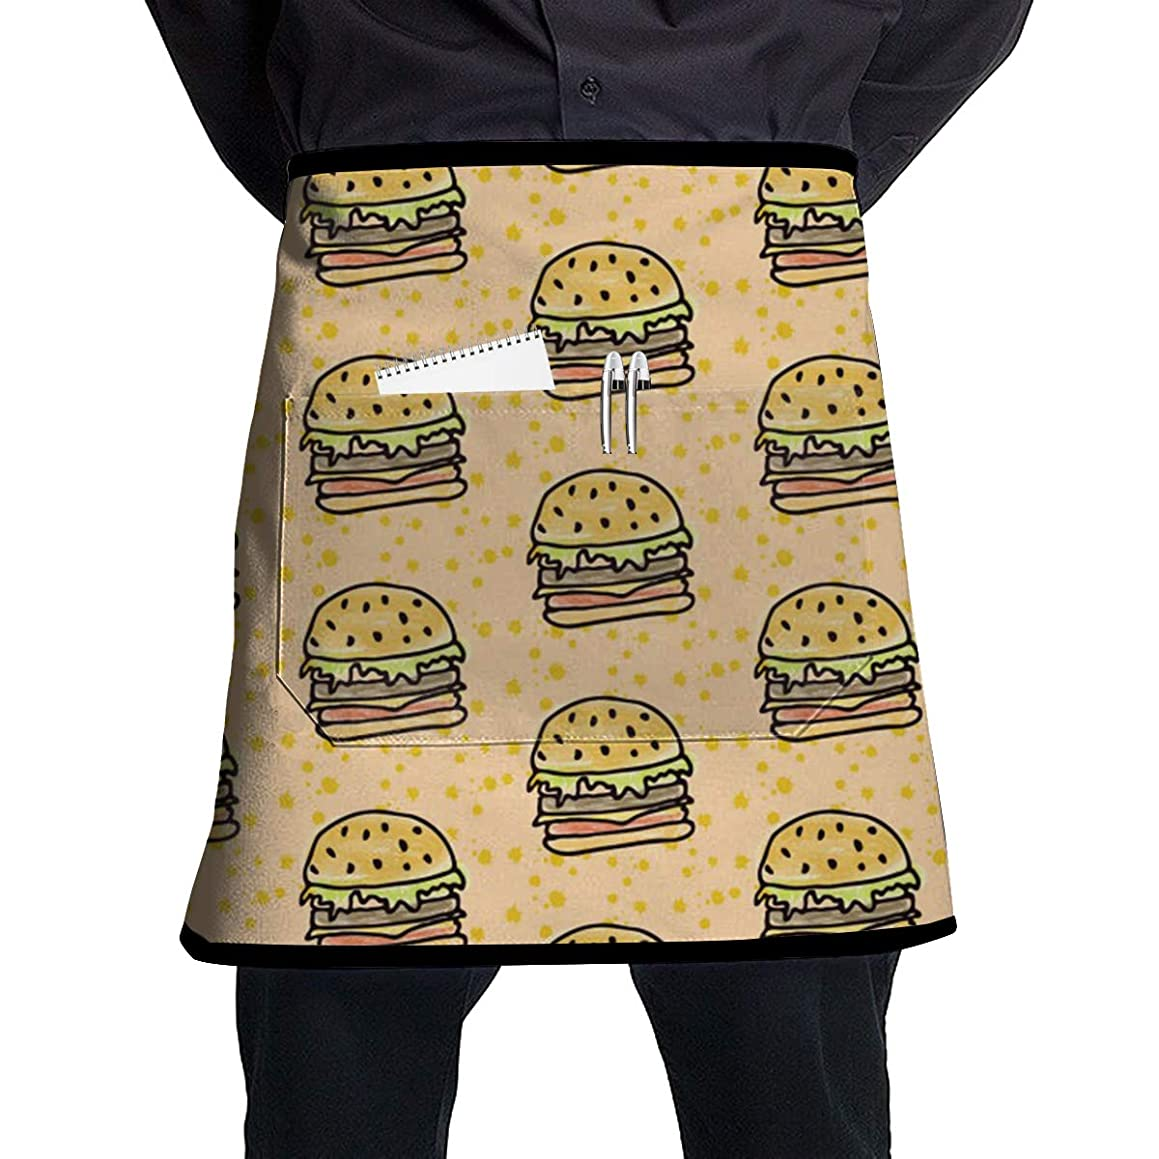 ALLMYHOMEDECOR Hamburger Food Pattern Waist Aprons Bib Unisex Adjustable Polyester Cooking Gardening BBQ Kitchen Chef Apron for Outdoor Serving Grill Restaurant Cleaning Baking Crafting